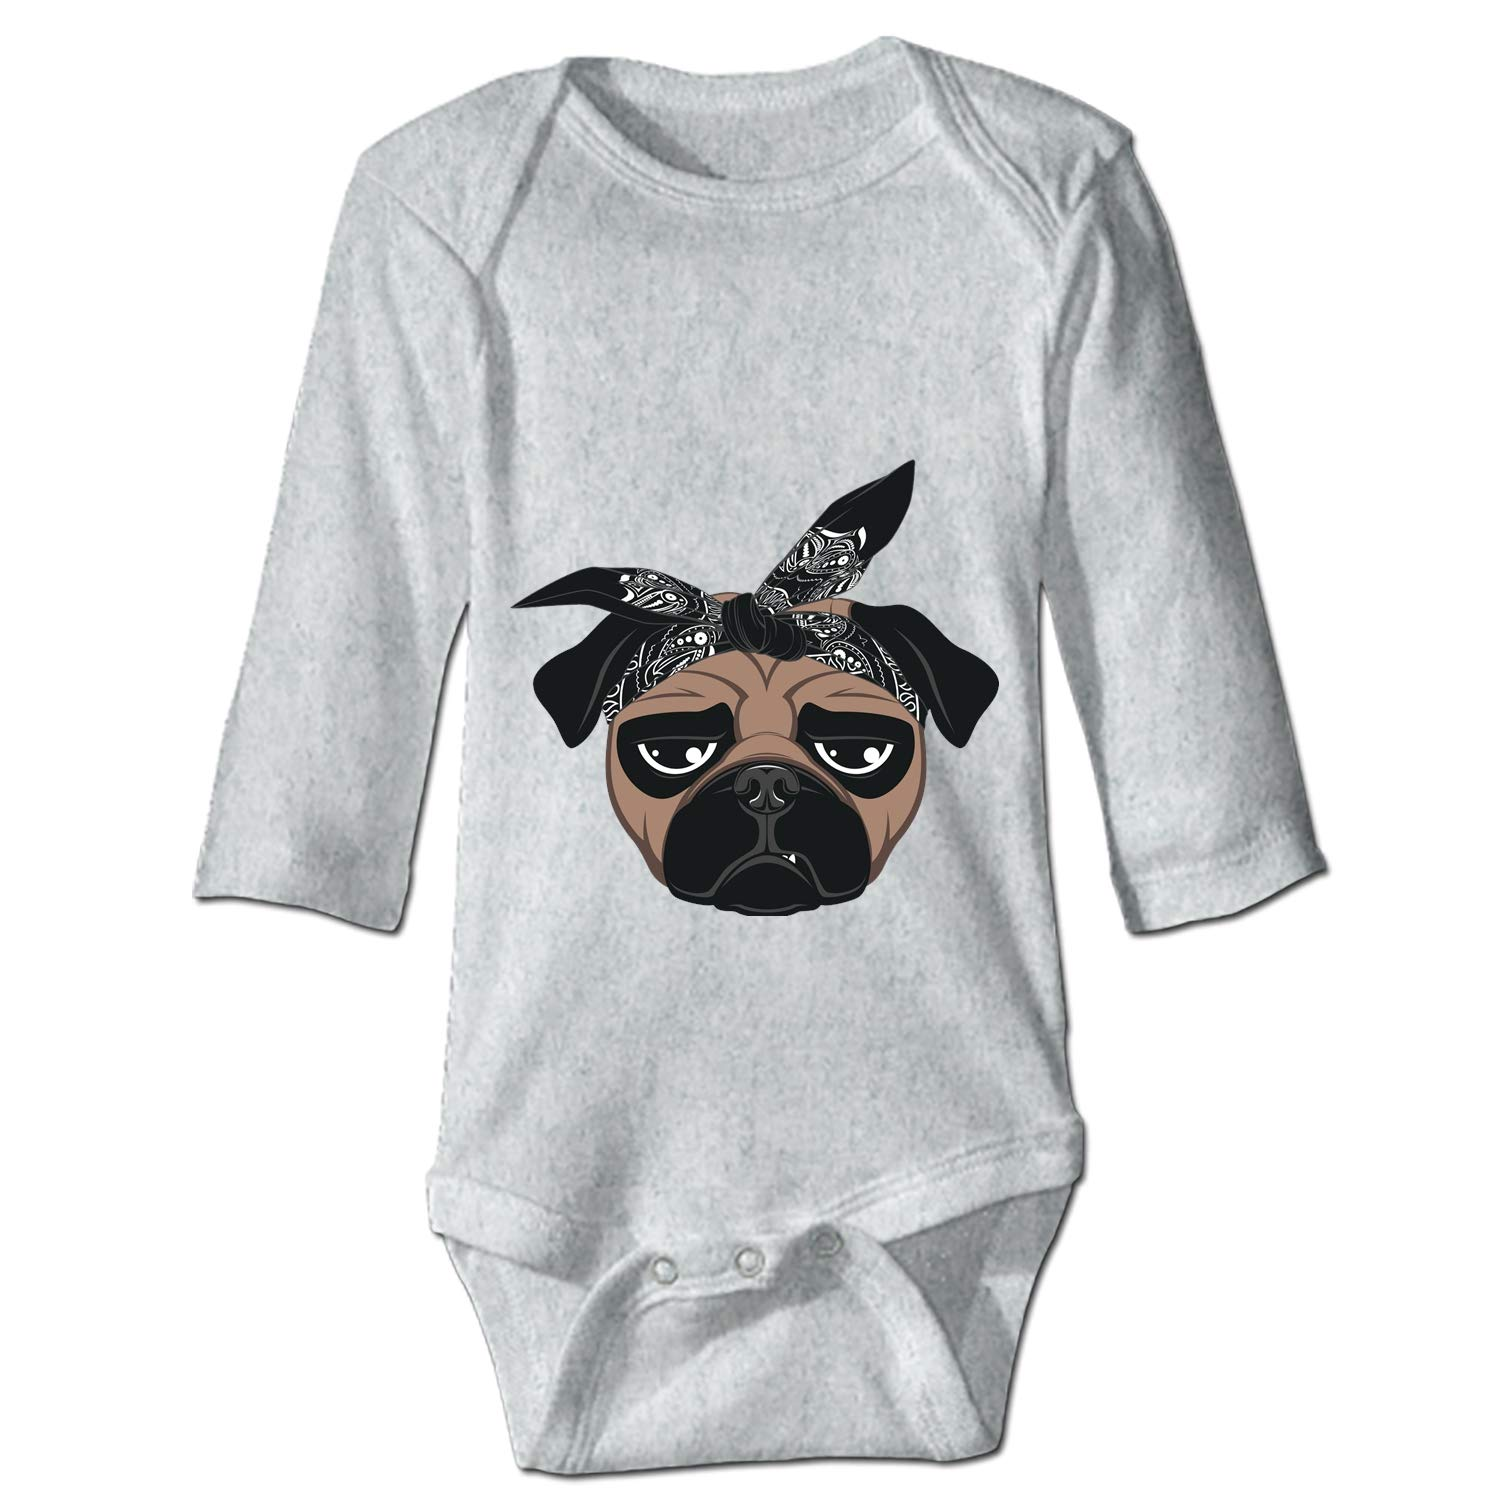 Funny Shirt I Love Pugs in Color Plain Gift Idea Romper Bodysuits